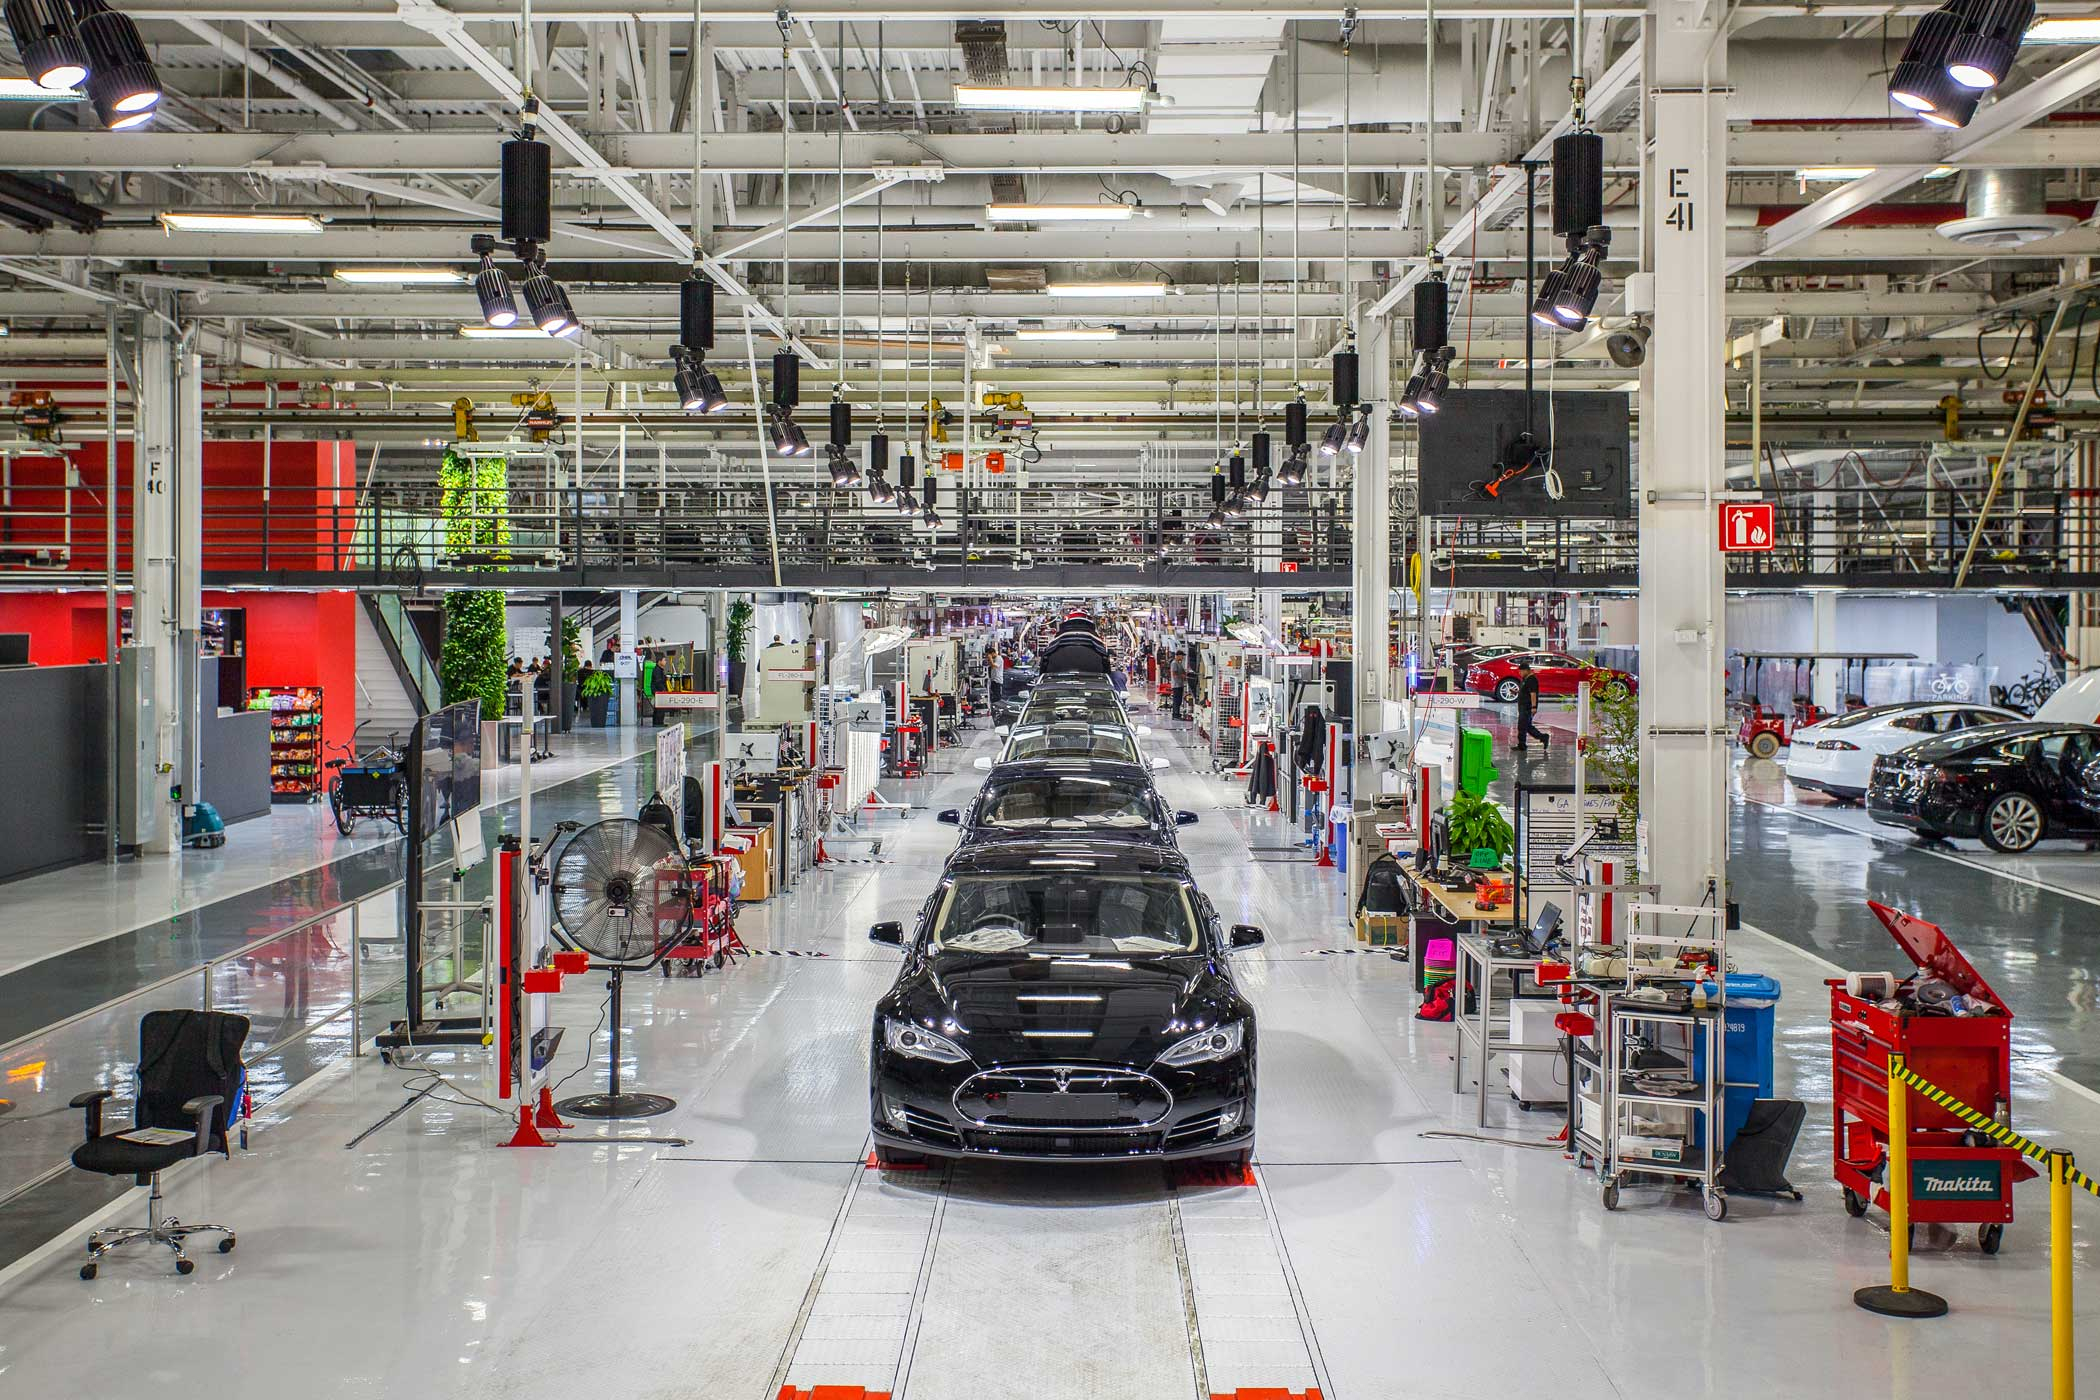 Model S cars near the end of the assembly line at the Tesla Factory in Fremont, Calif.